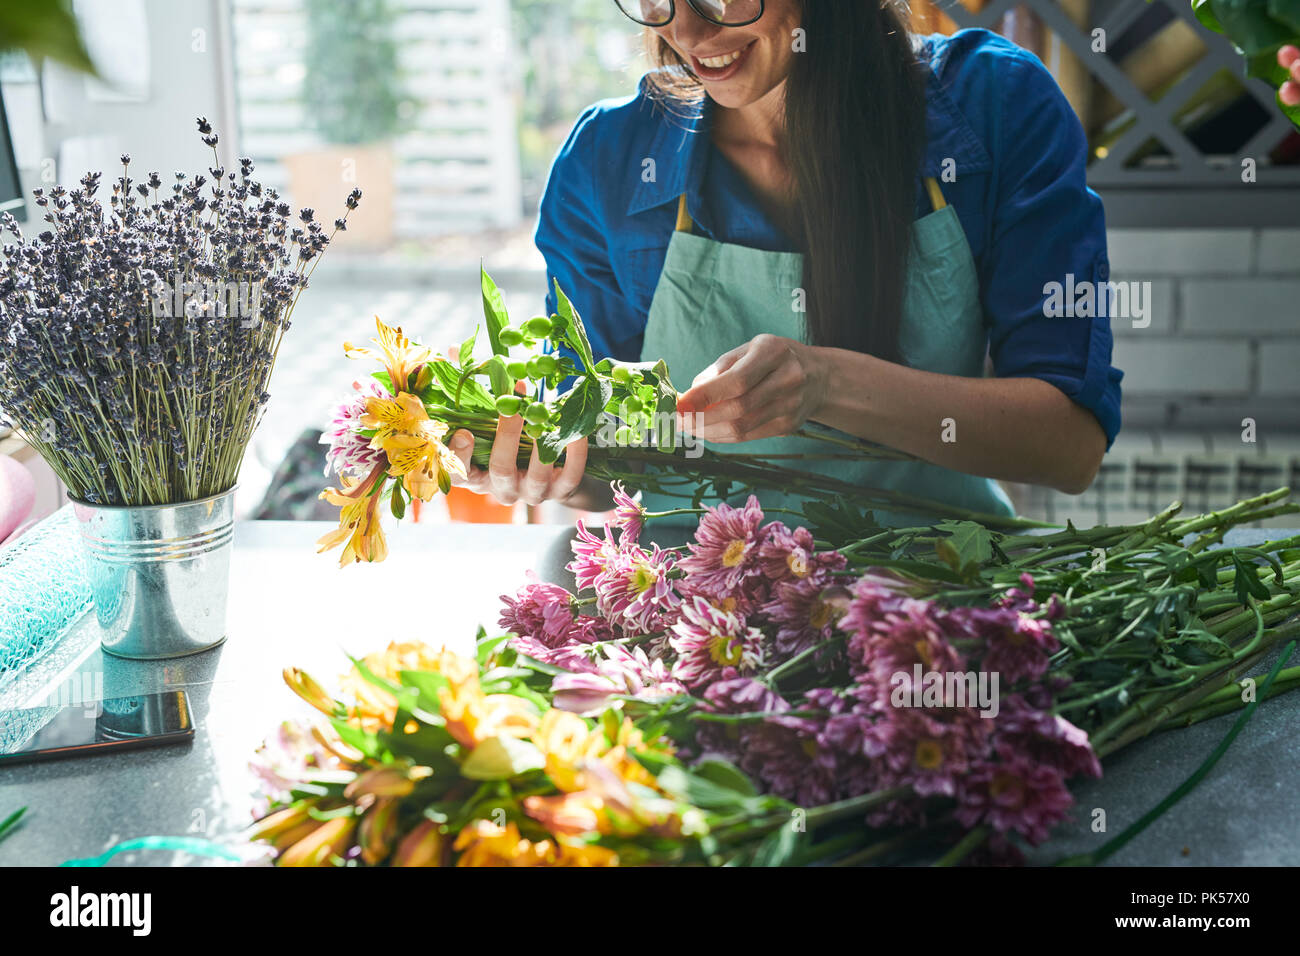 Creative Florist Arranging Bouquets - Stock Image